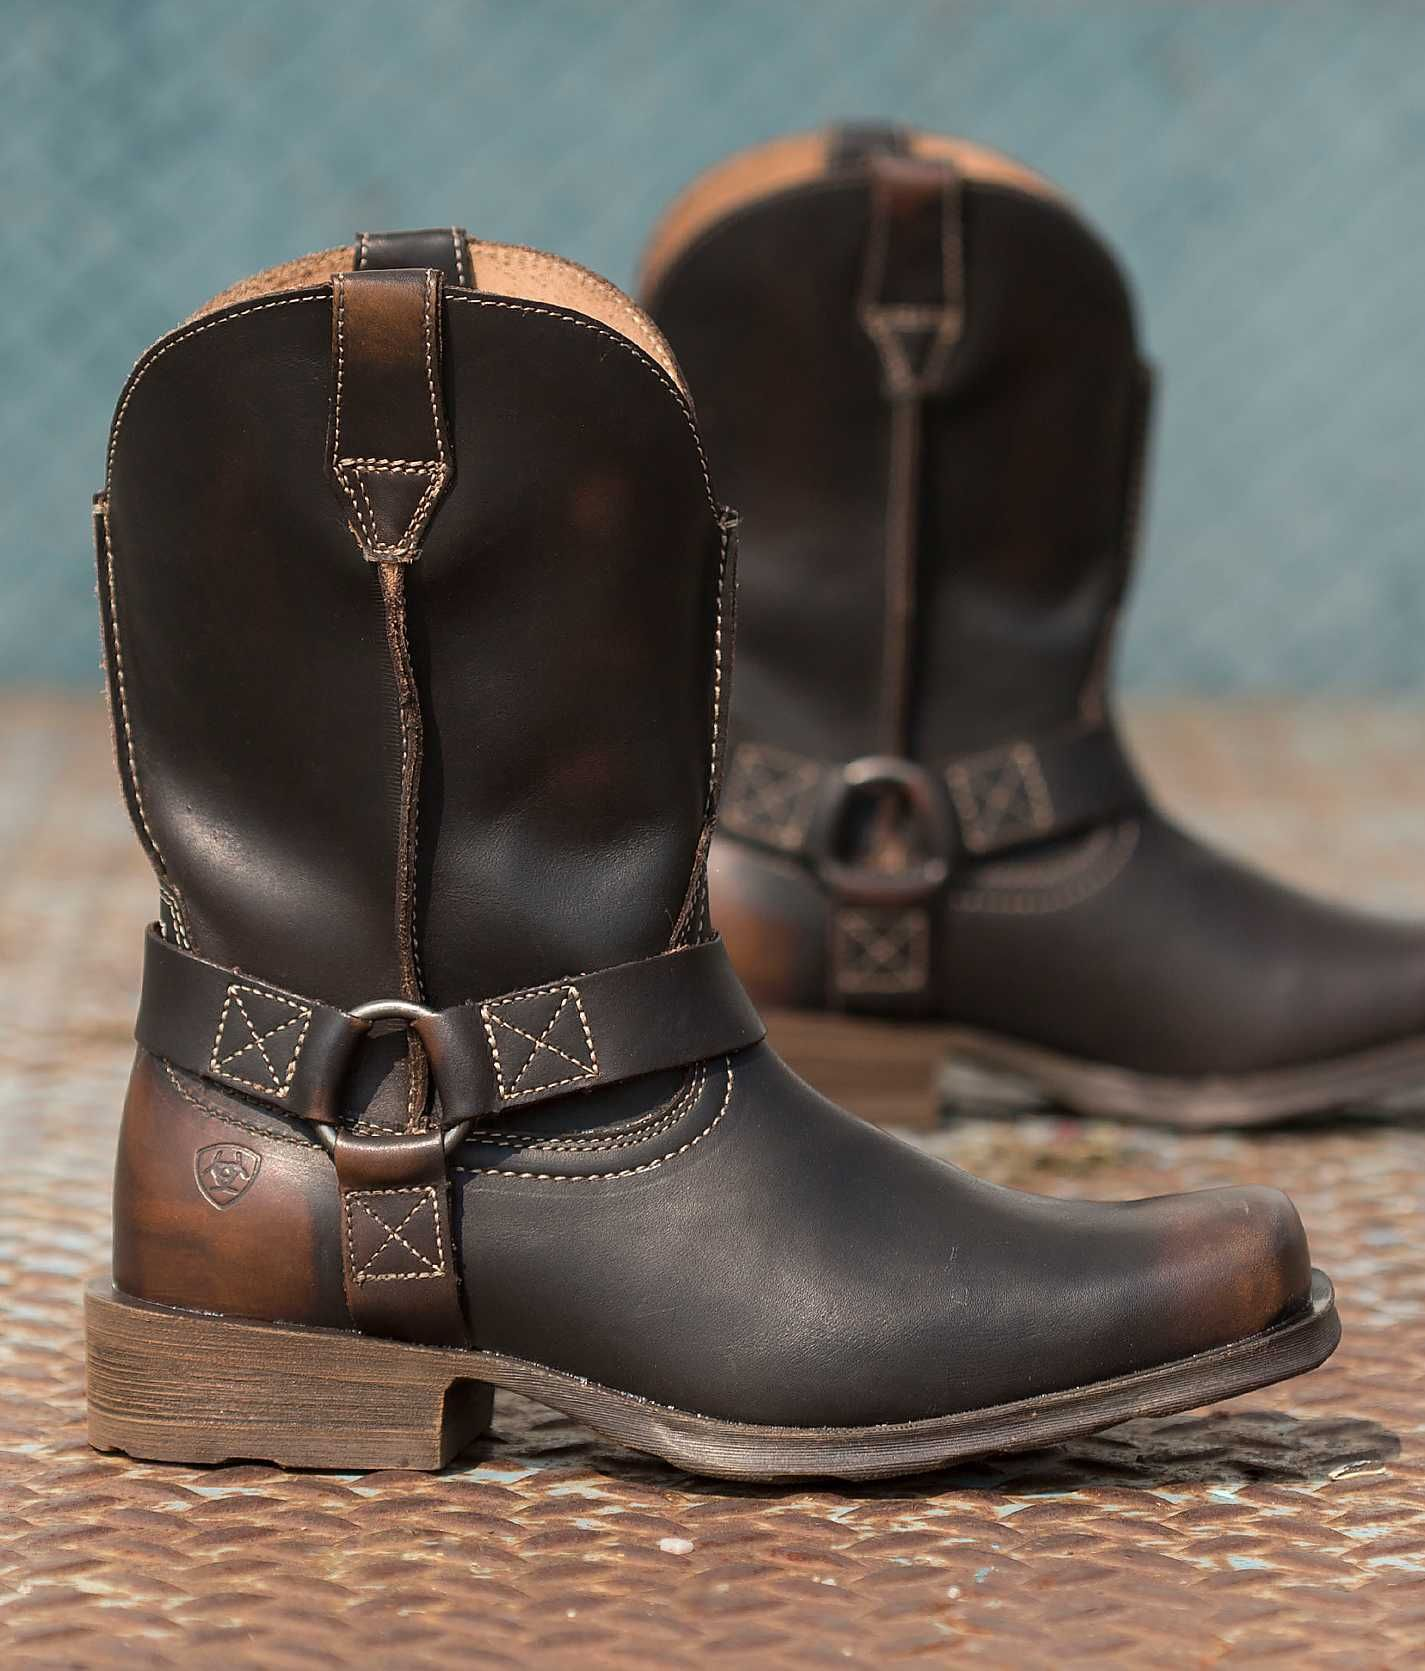 Ariat Rambler Boot - Men's Shoes | Buckle | Edgy Men's Style ...